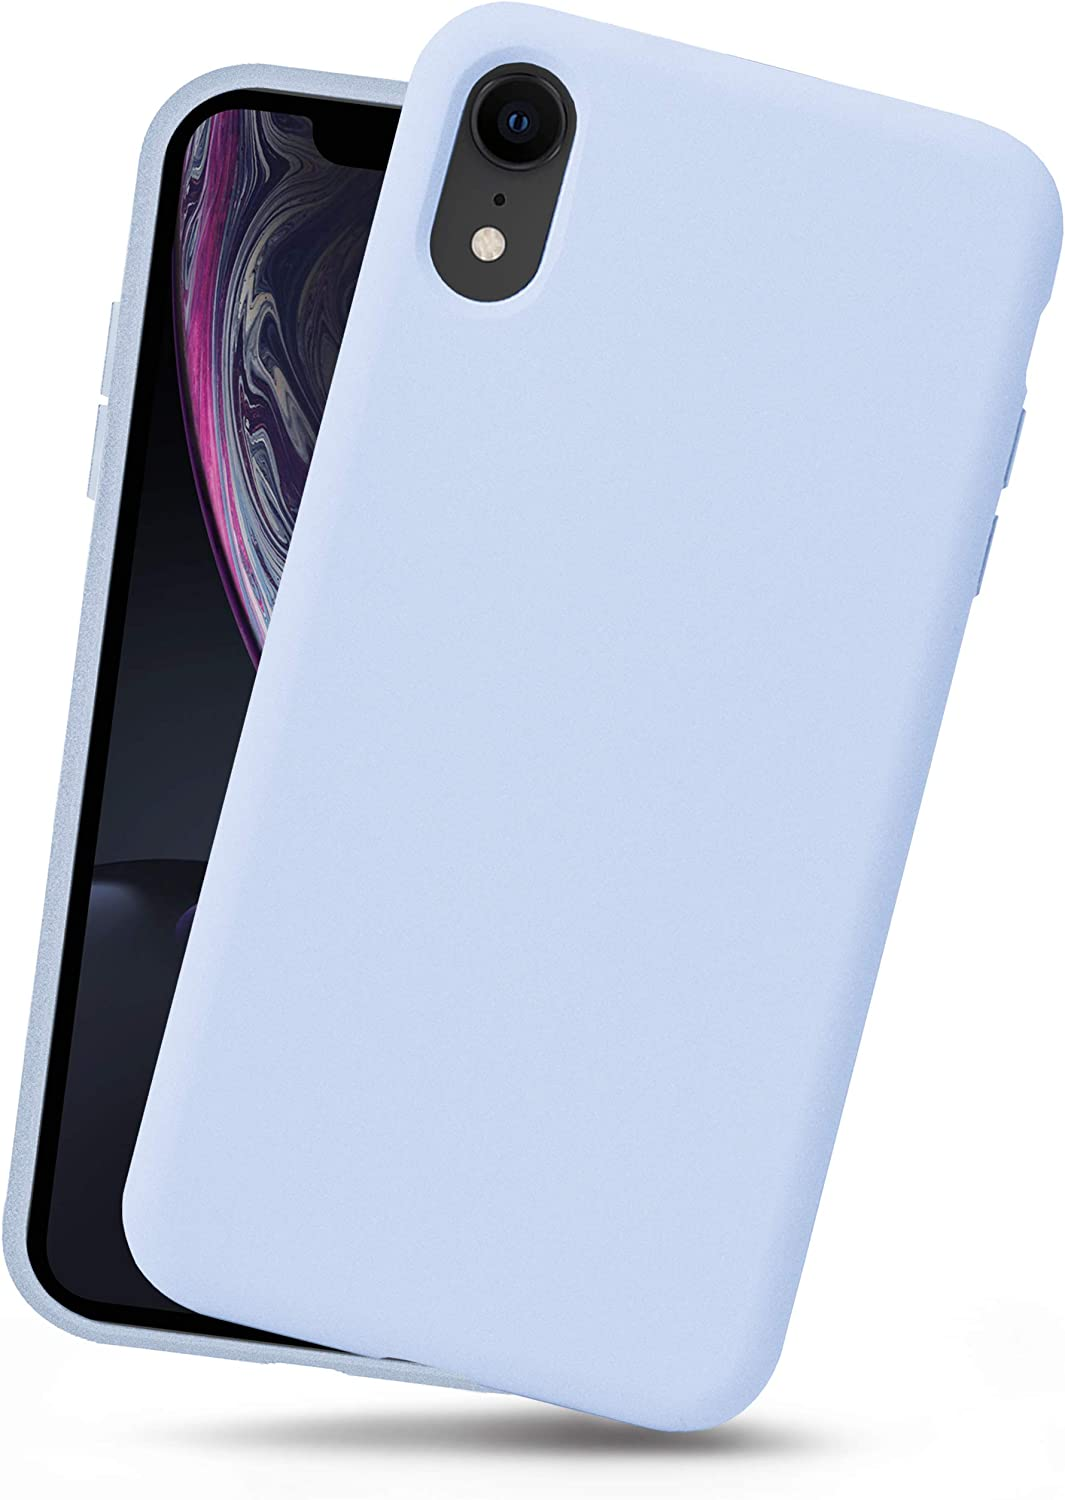 OCOMMO iPhone XR Silicone Case, Full Body Shockproof Protective Liquid Silicone XR Cases with Soft Microfiber Lining, Wireless Charge Pad Compatible, Sky Blue